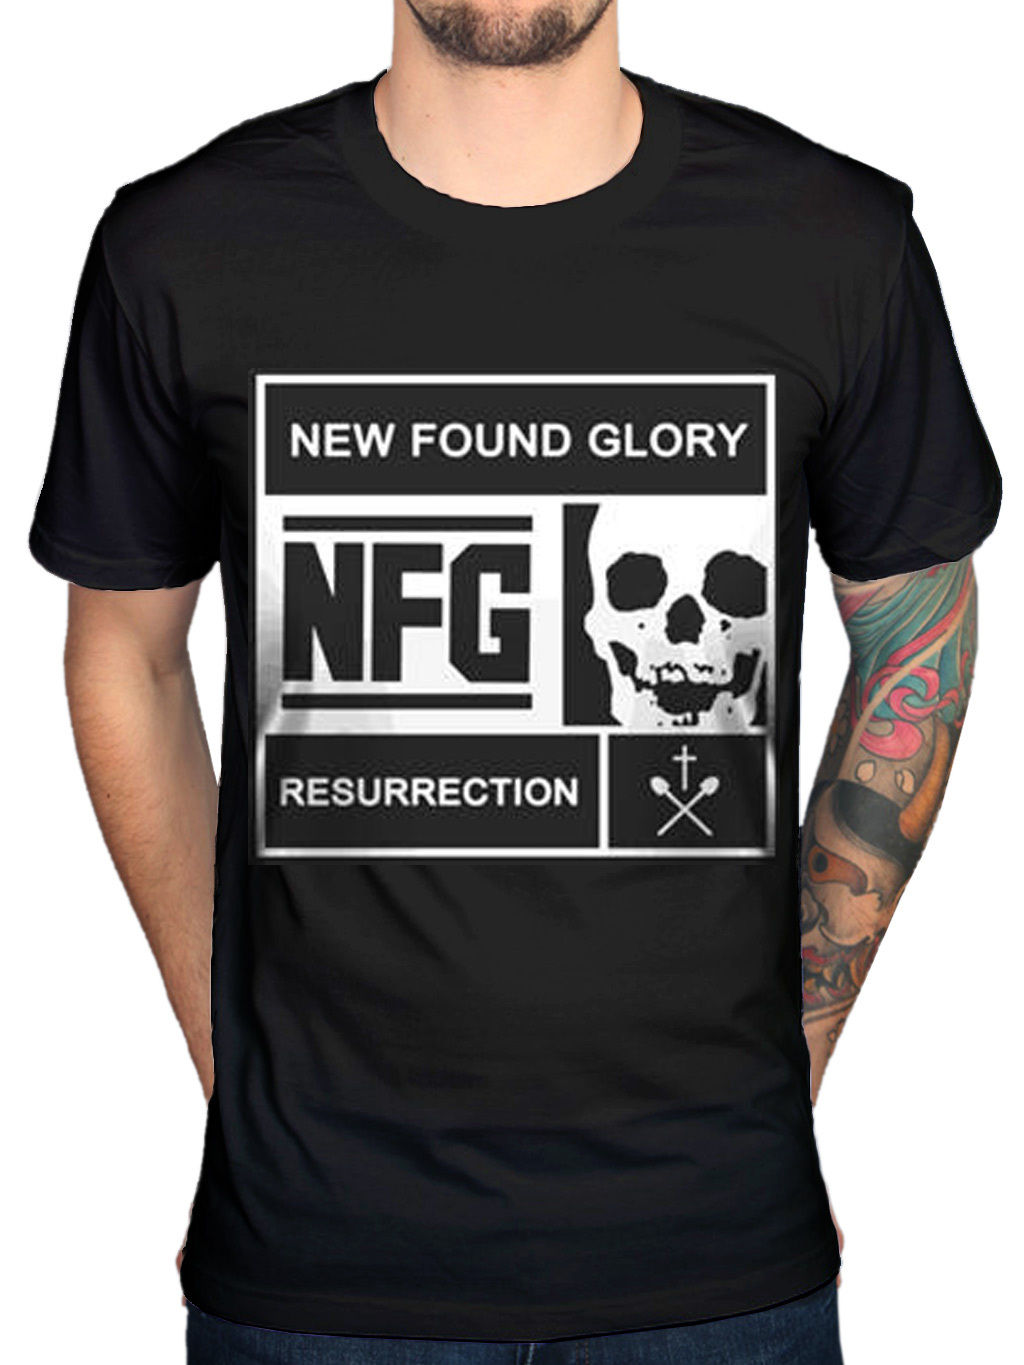 Official New Found Glory Blocked Resurrection T-Shirt Pop Punk Band Merchandise Printed T Shirt Summer MenS Top Tee